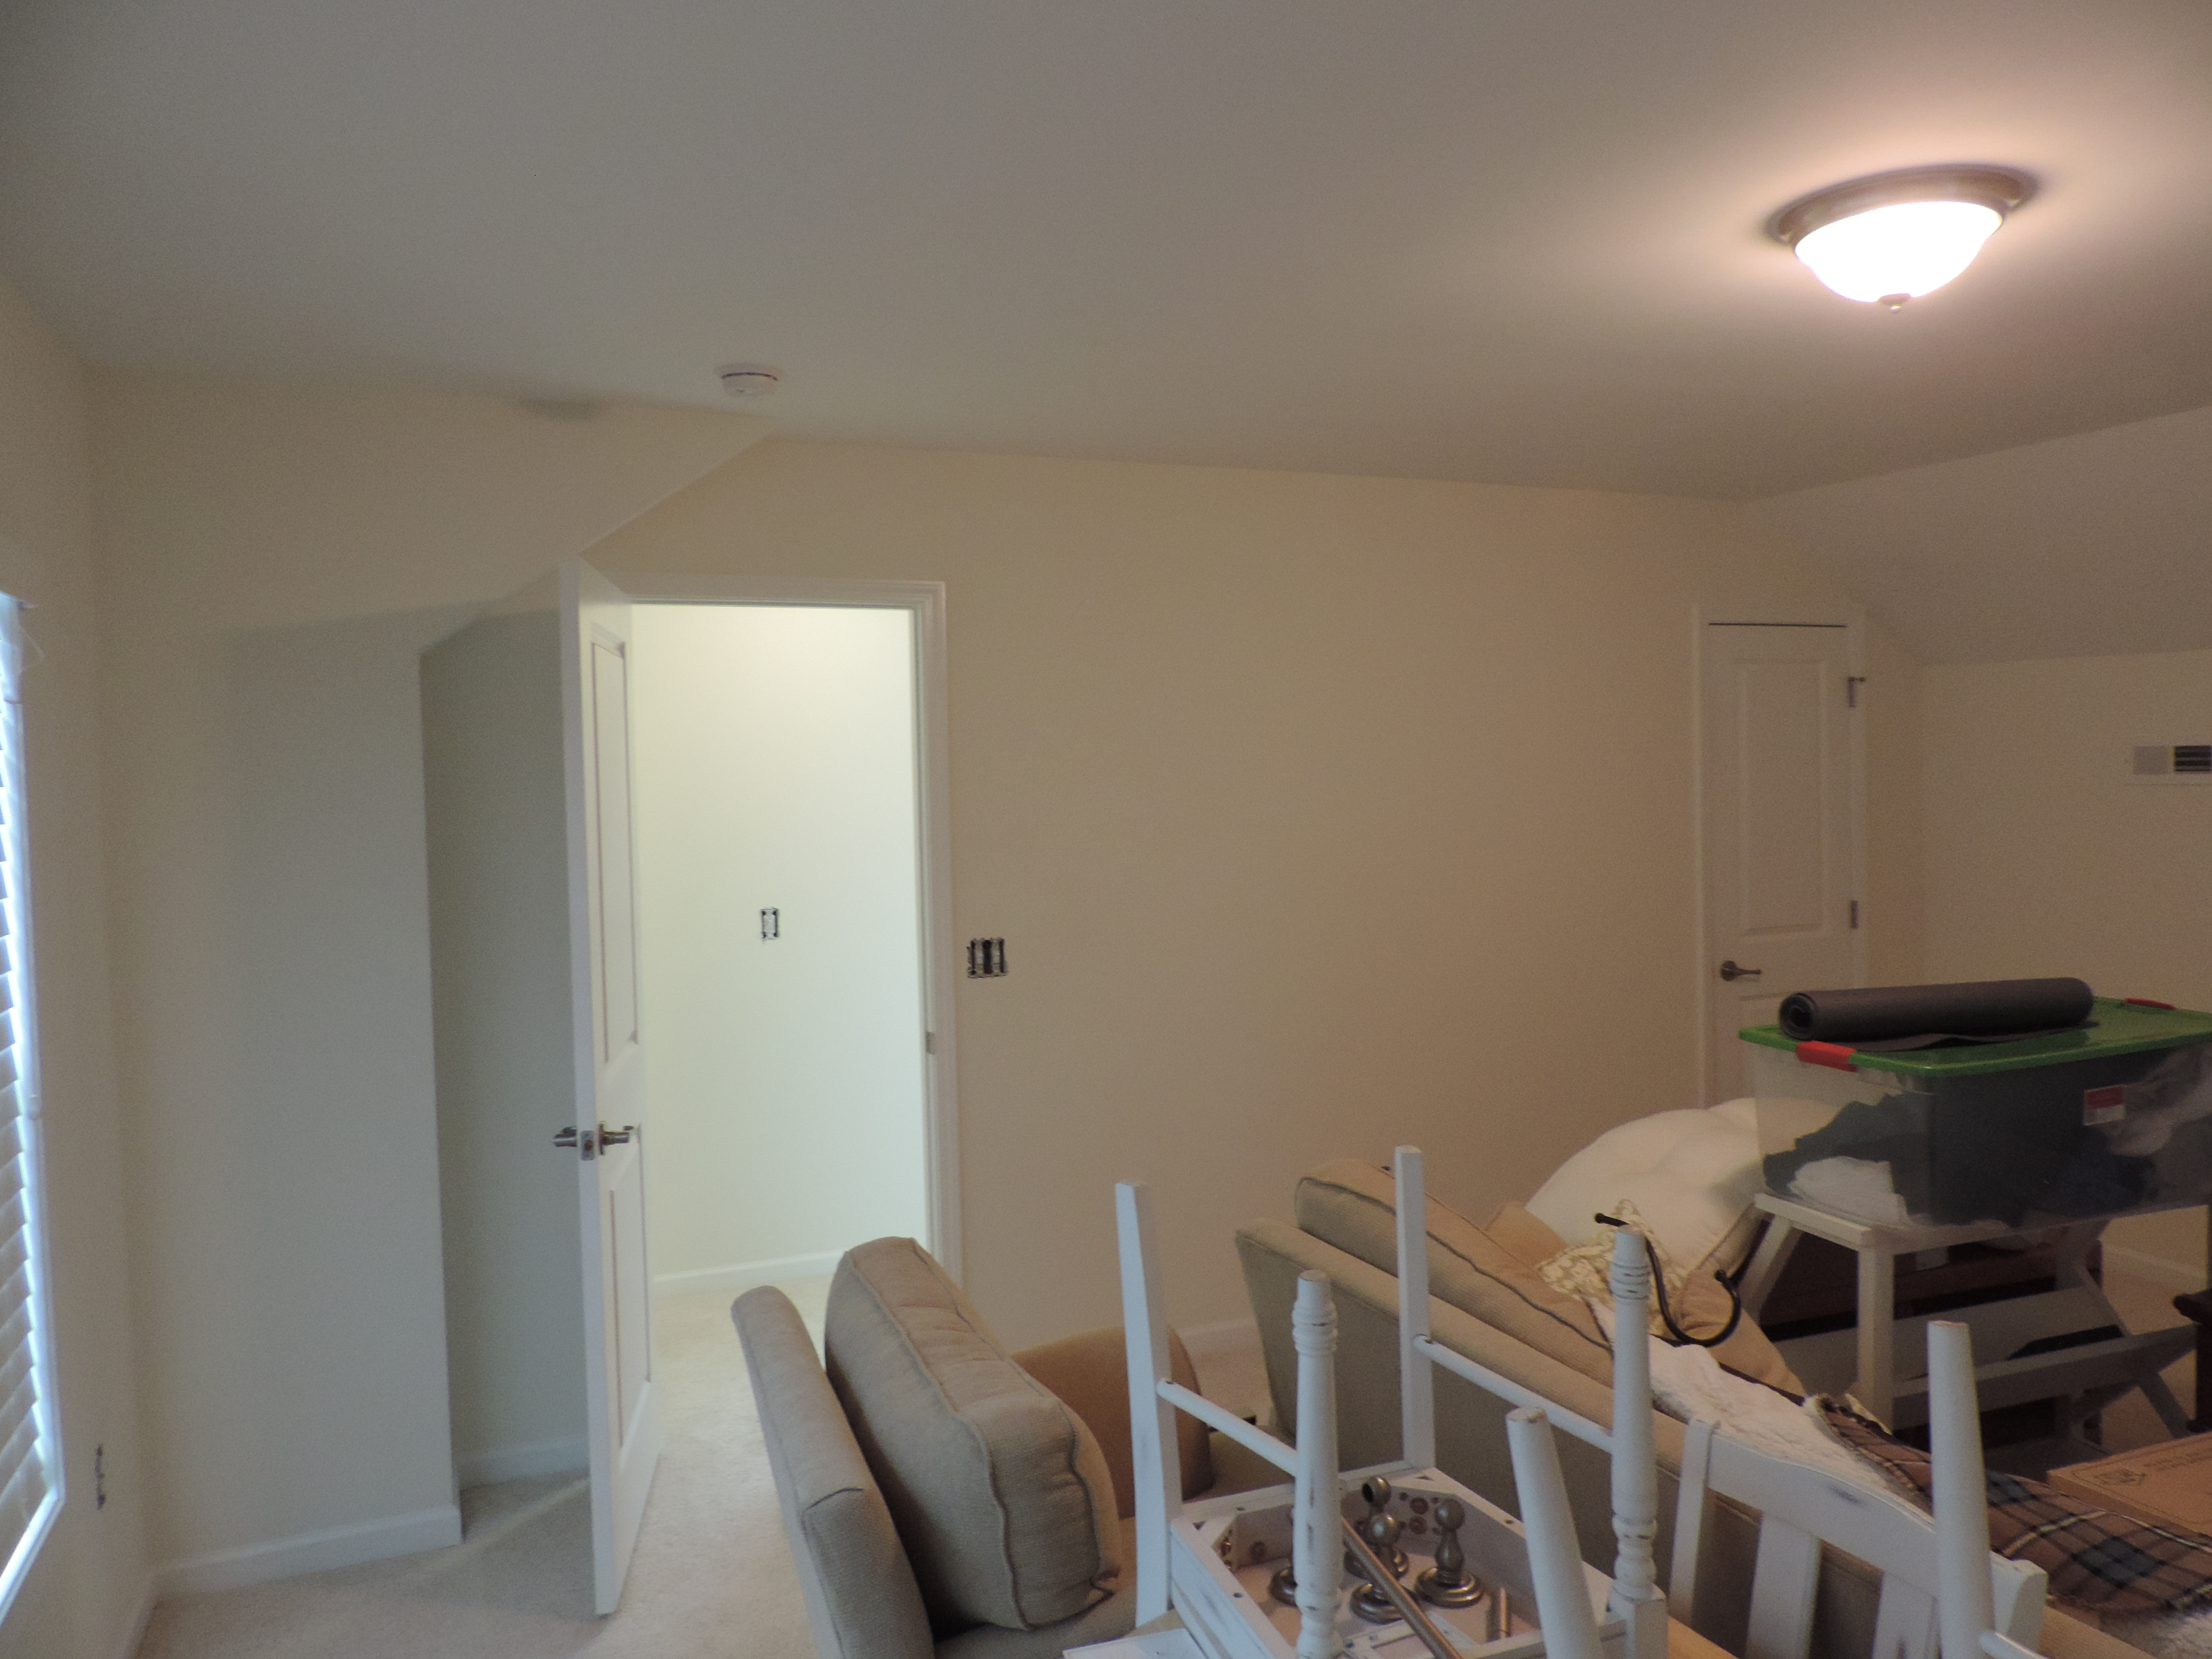 Bedroom into Stairwell Before